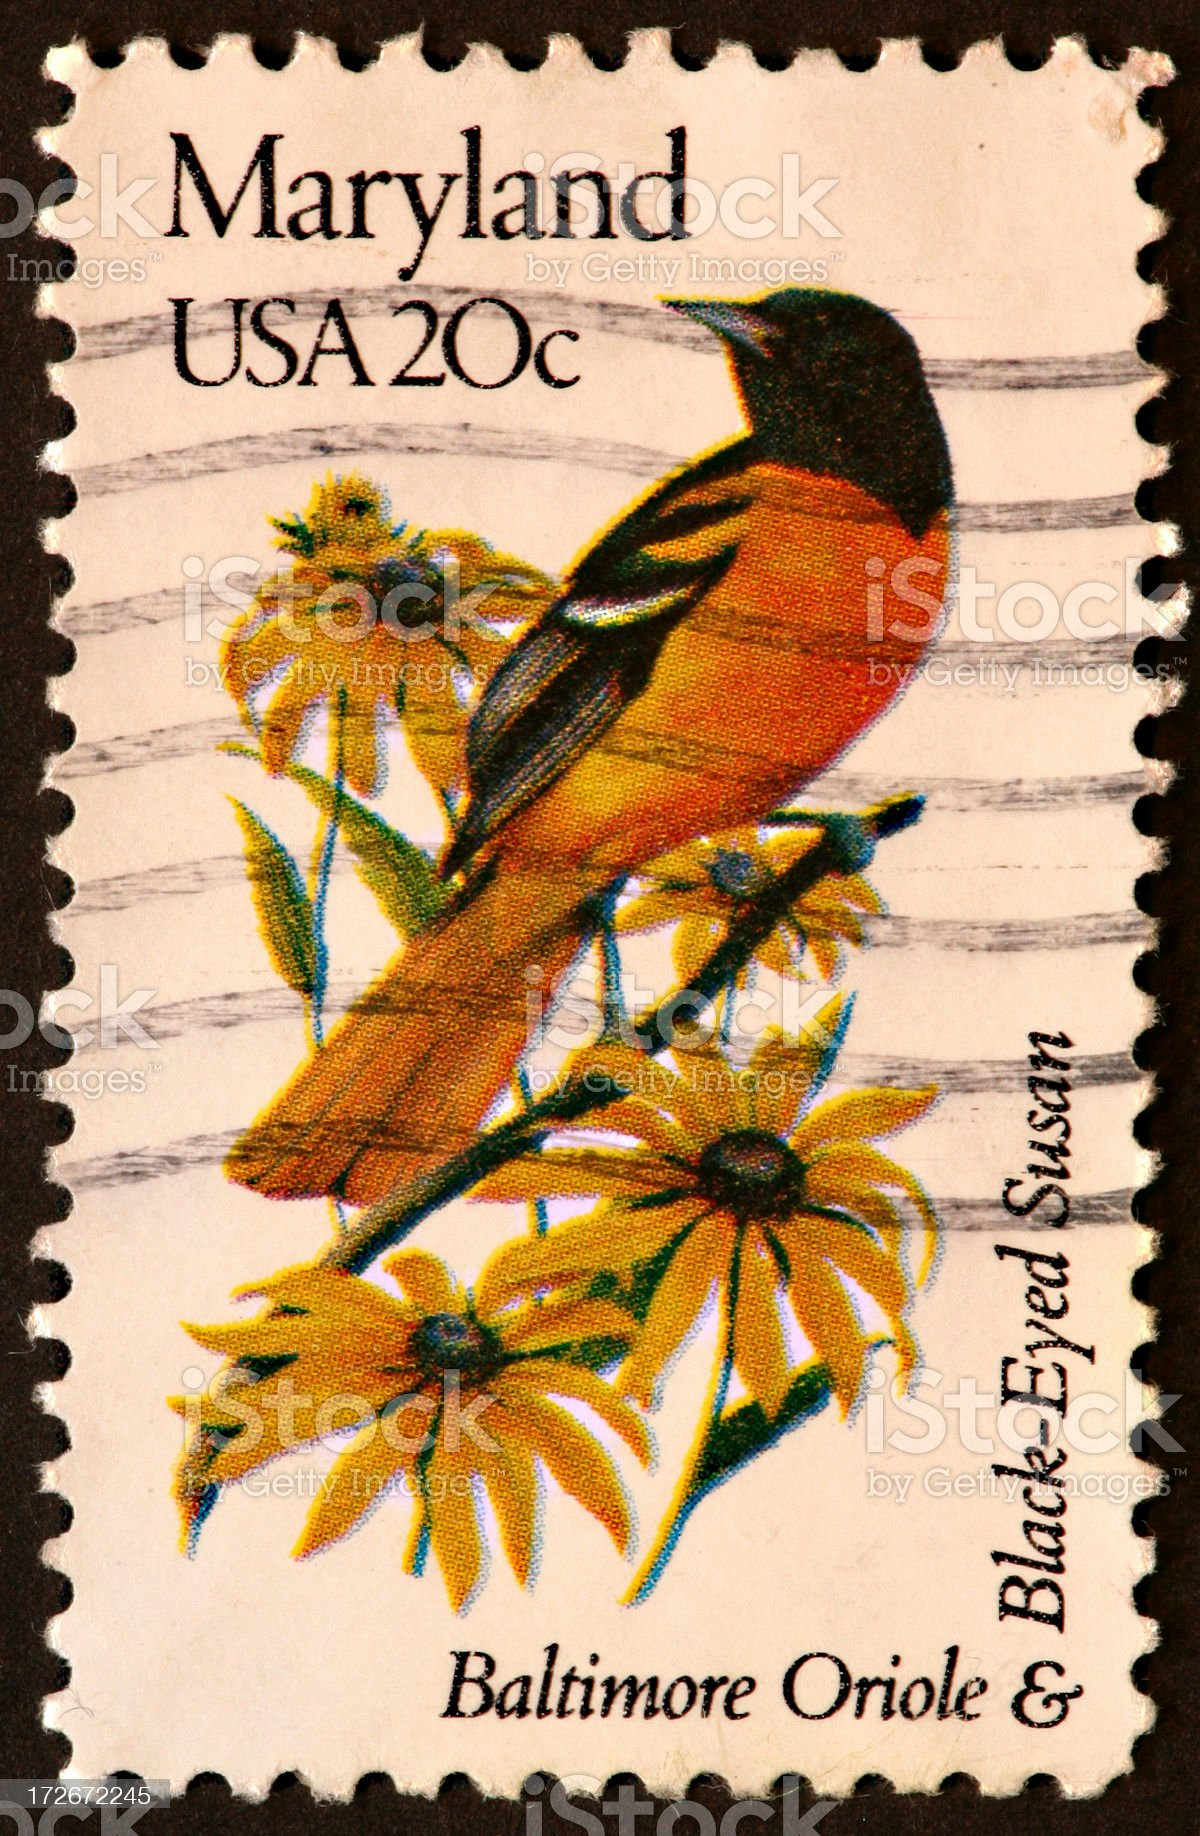 Maryland, Oriole, and Black-eyed Susan stamp royalty-free stock photo